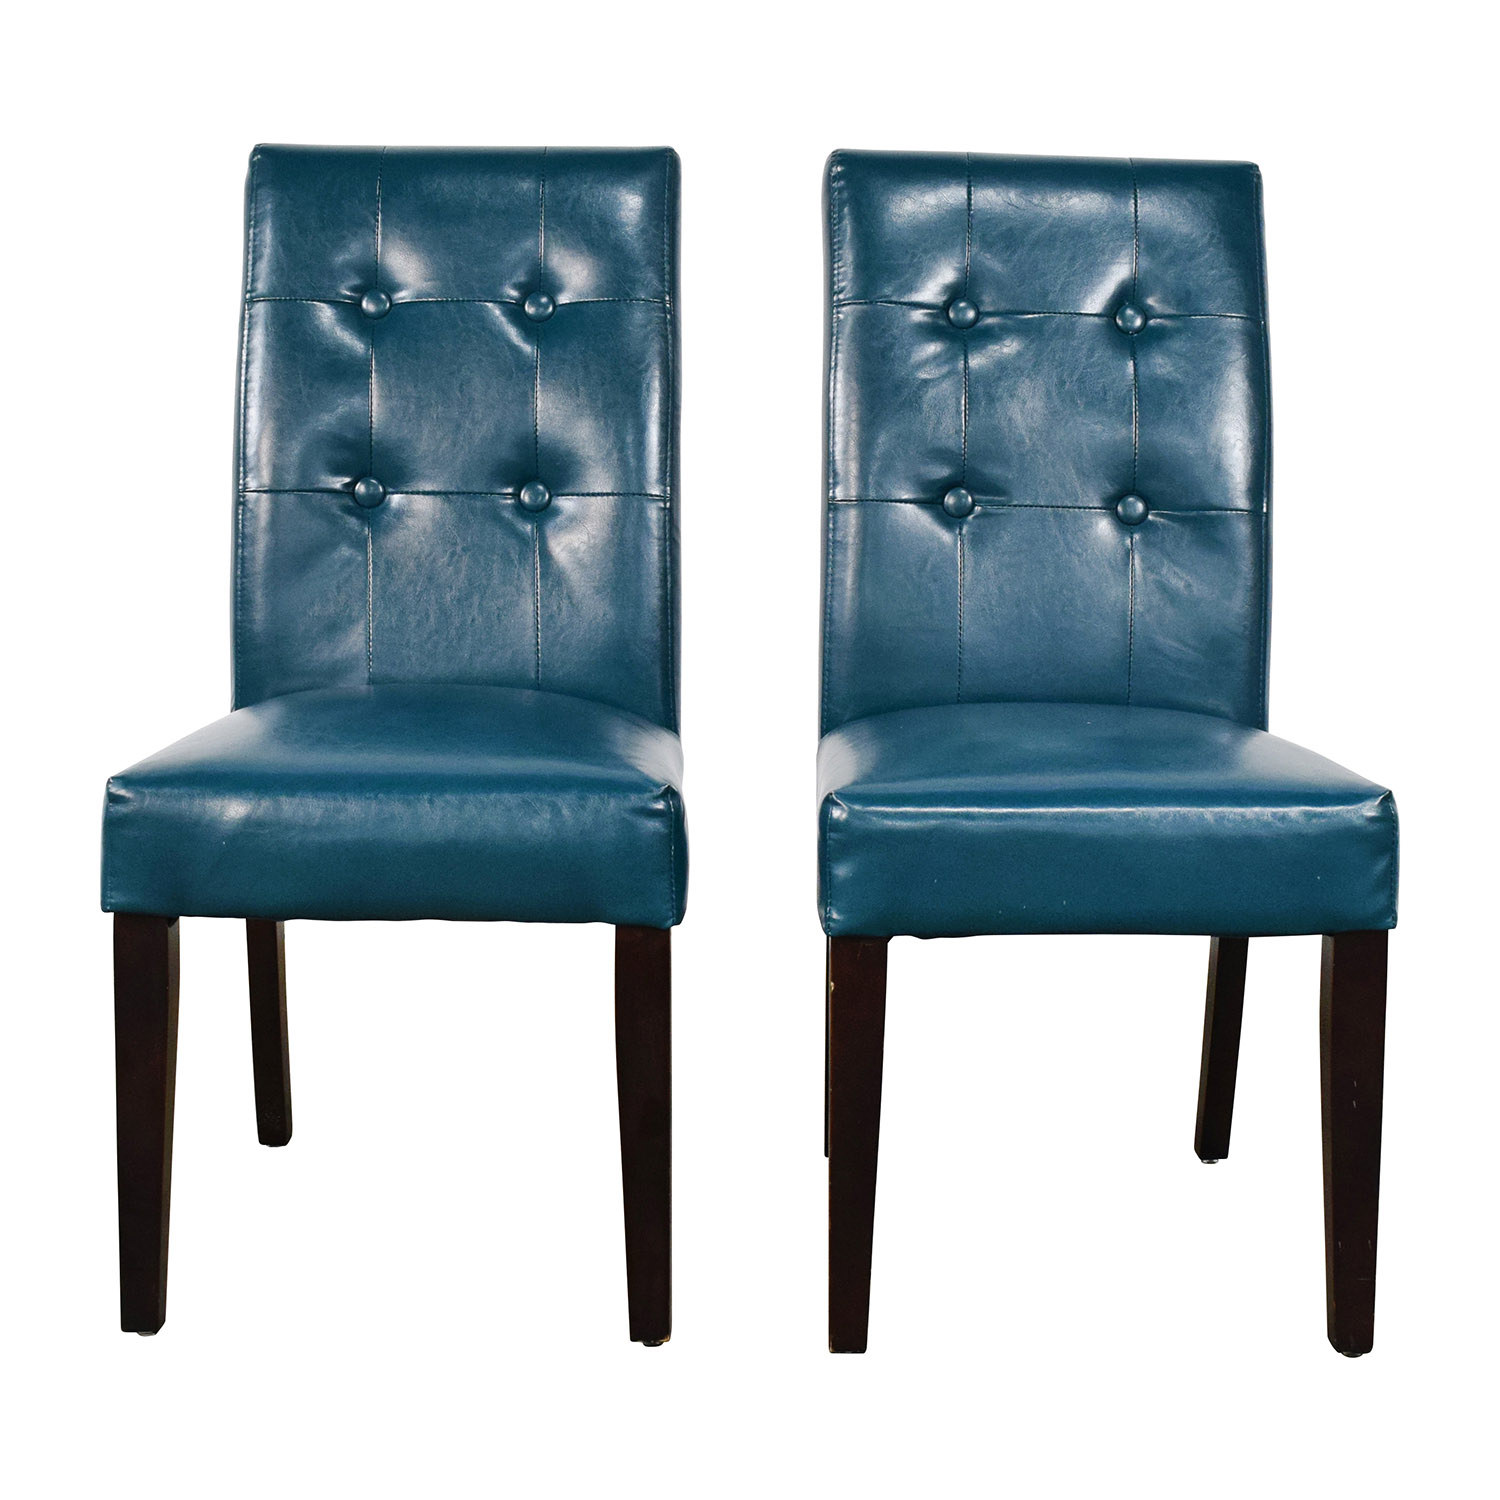 Pier 1 Imports Pier 1 Imports Mason Collection Teal Dining Chairs used